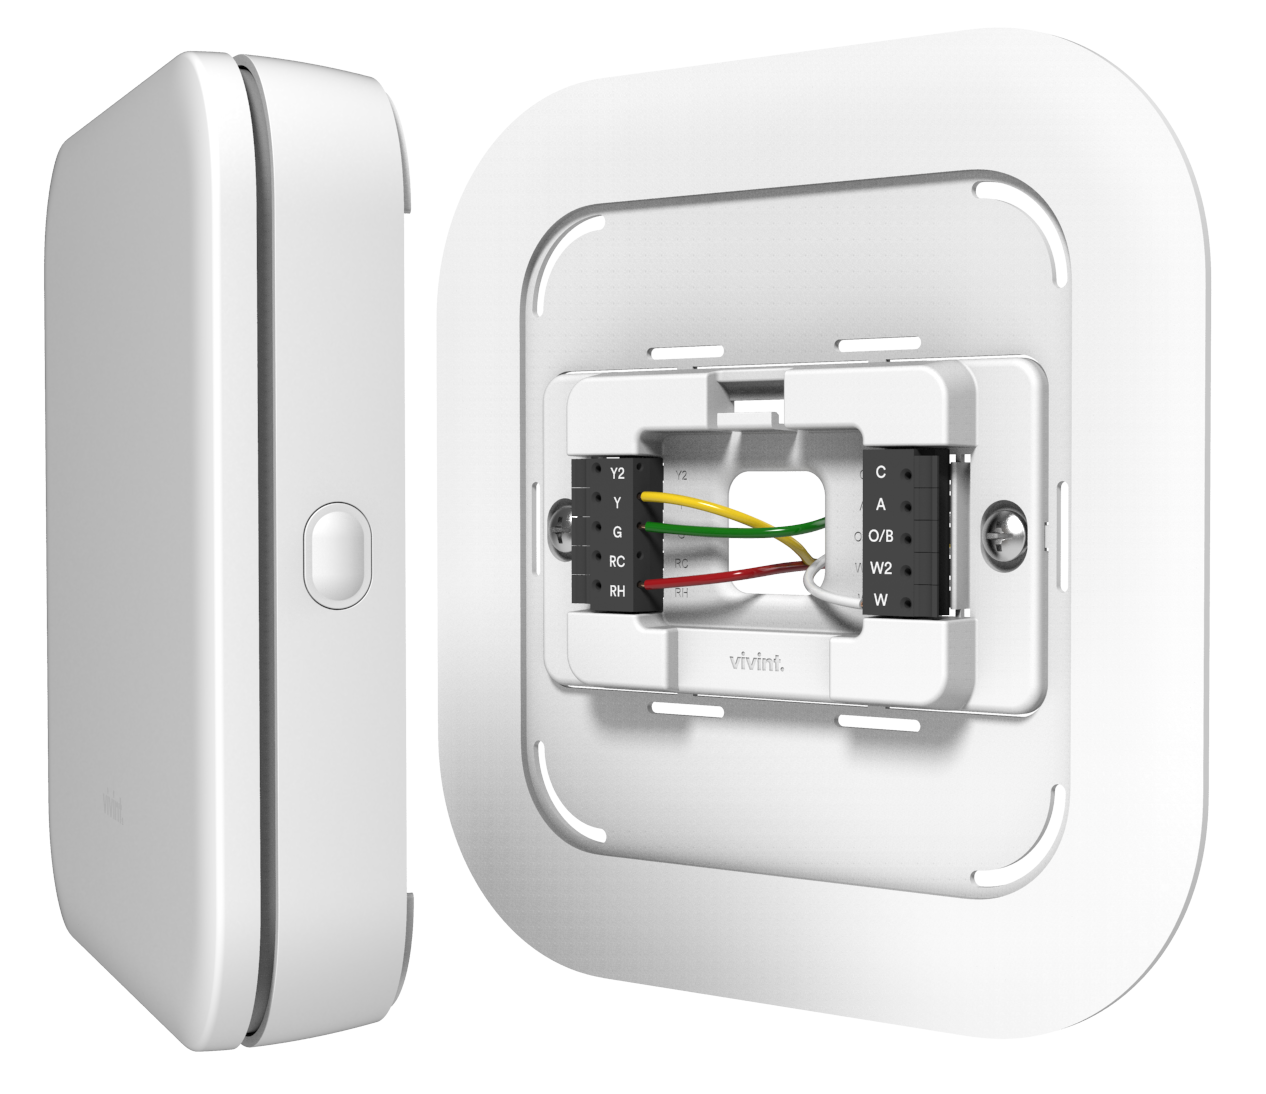 Element Thermostat - Installation GuideVivint Support